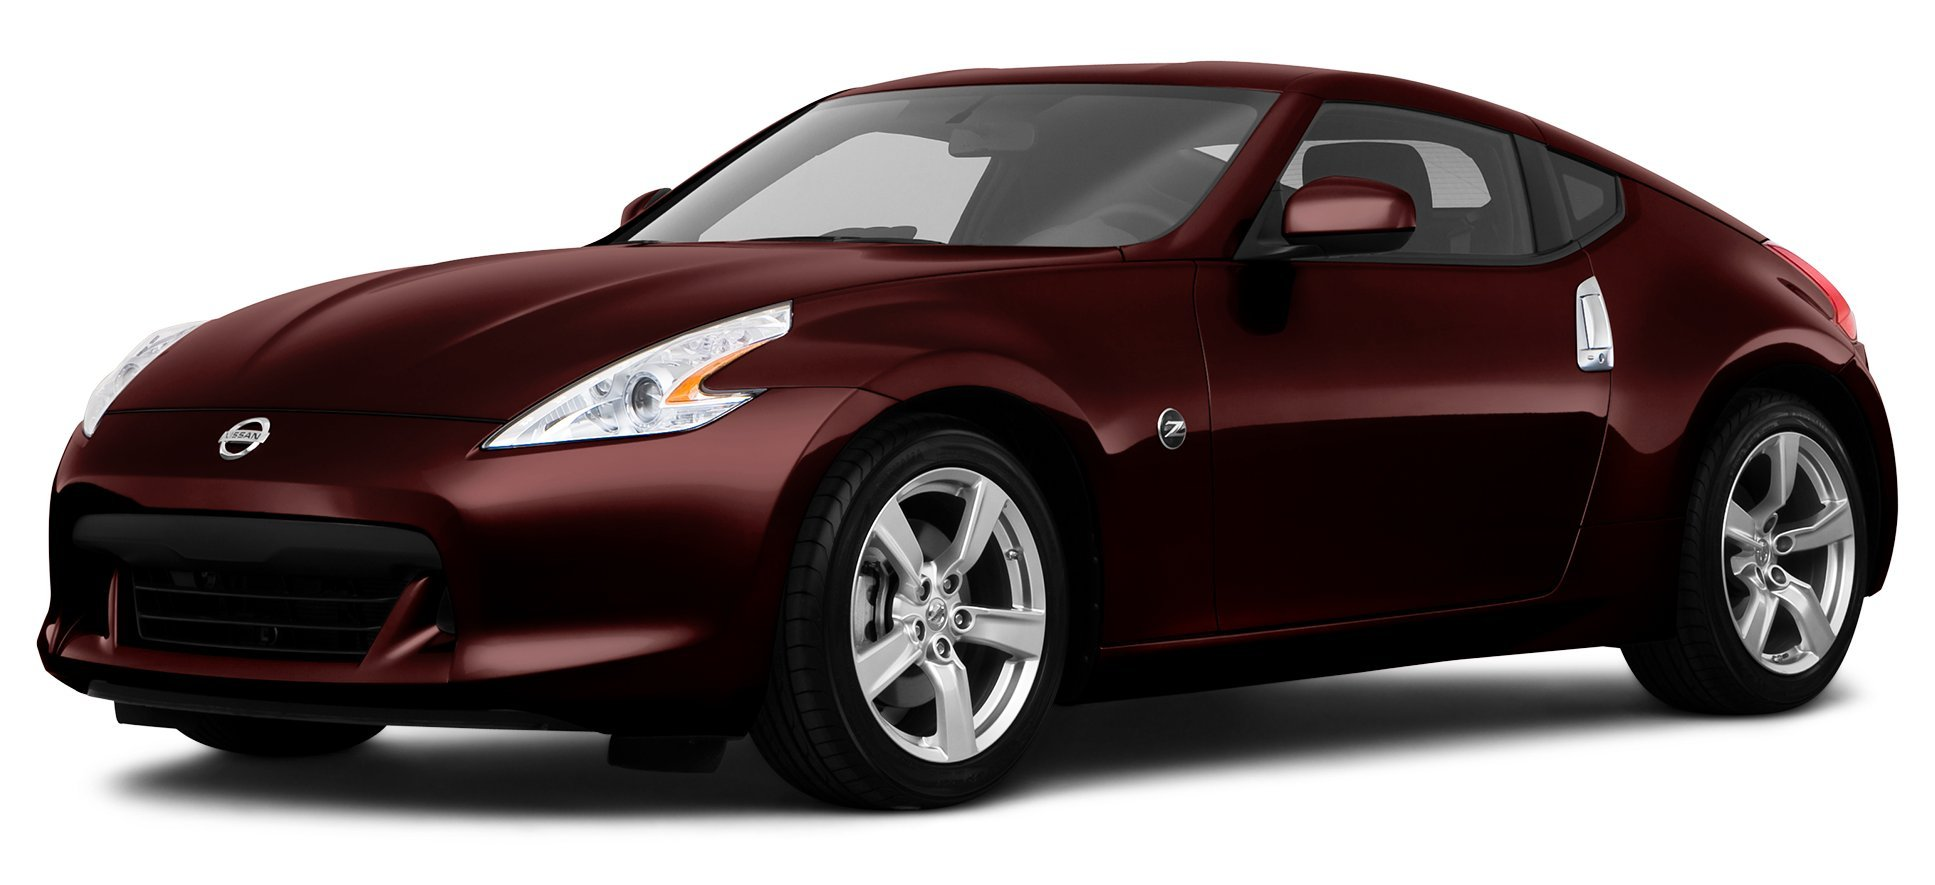 ... 2010 Nissan 370Z, 2 Door Coupe Automatic Transmission